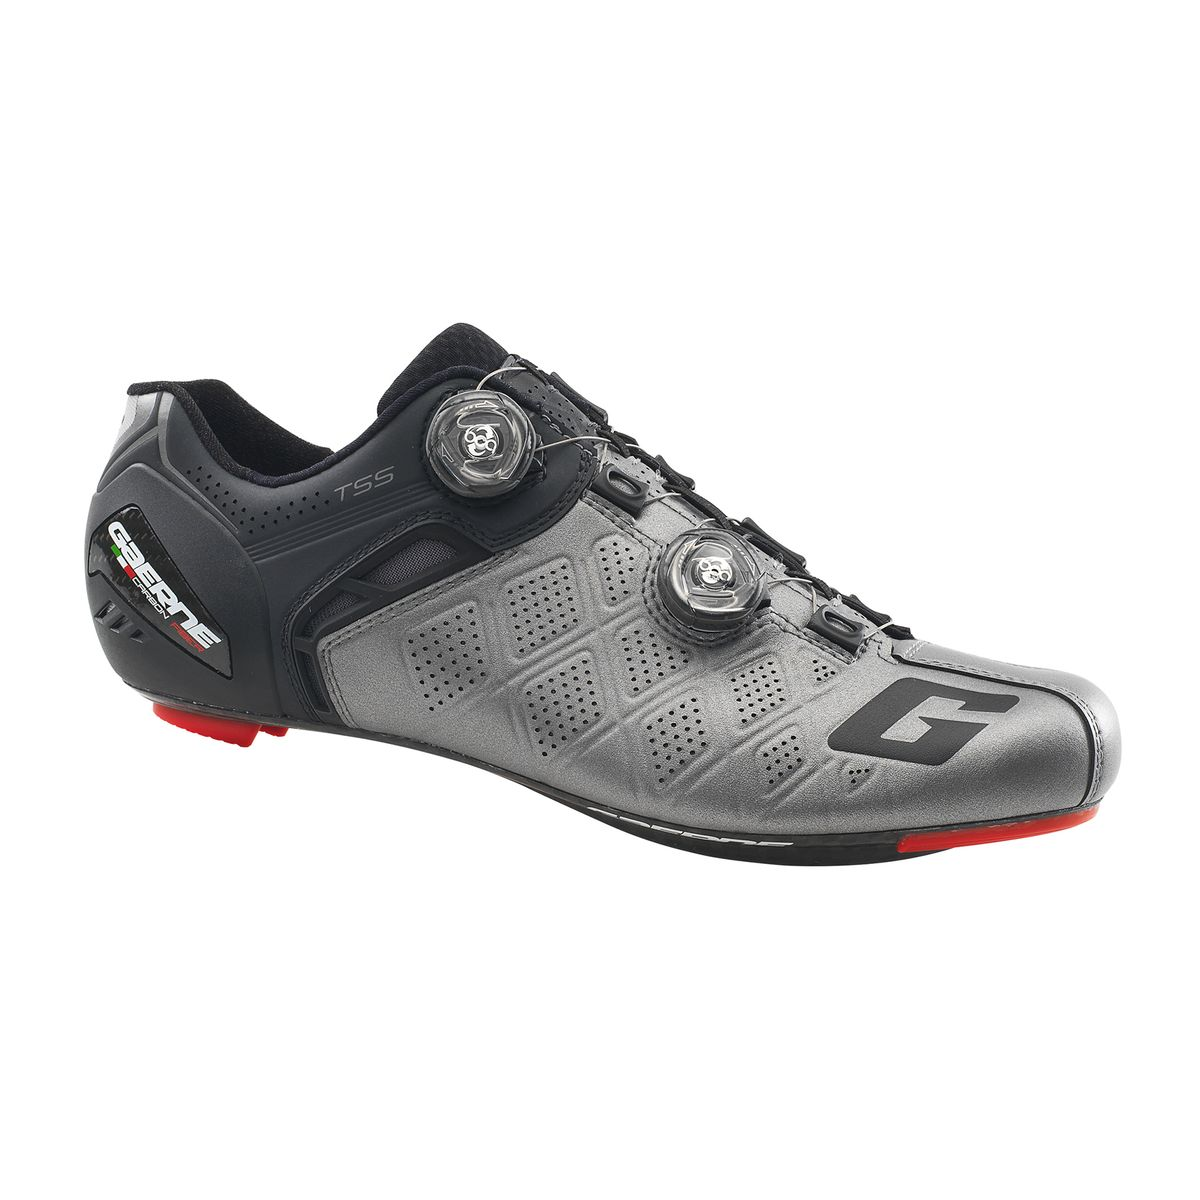 Boa Kopen Gaerne Carbon G Stilo Road Shoes